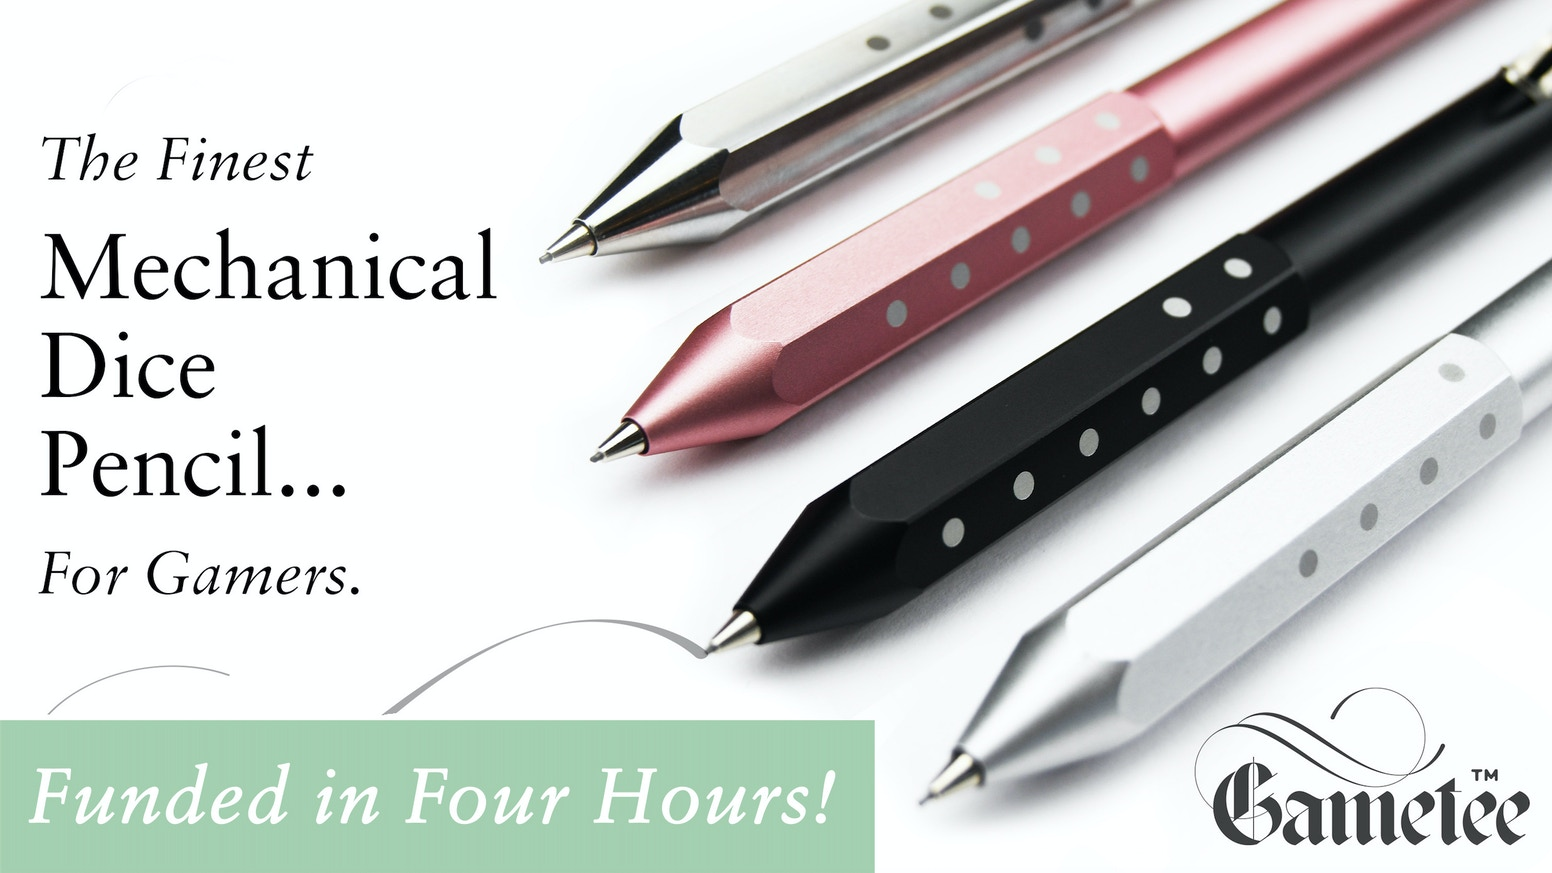 Finely Crafted Mechanical Dice Pencils in Aluminium and Titanium - Roll them as a Dice - The Only Pencils of their Type in the World!